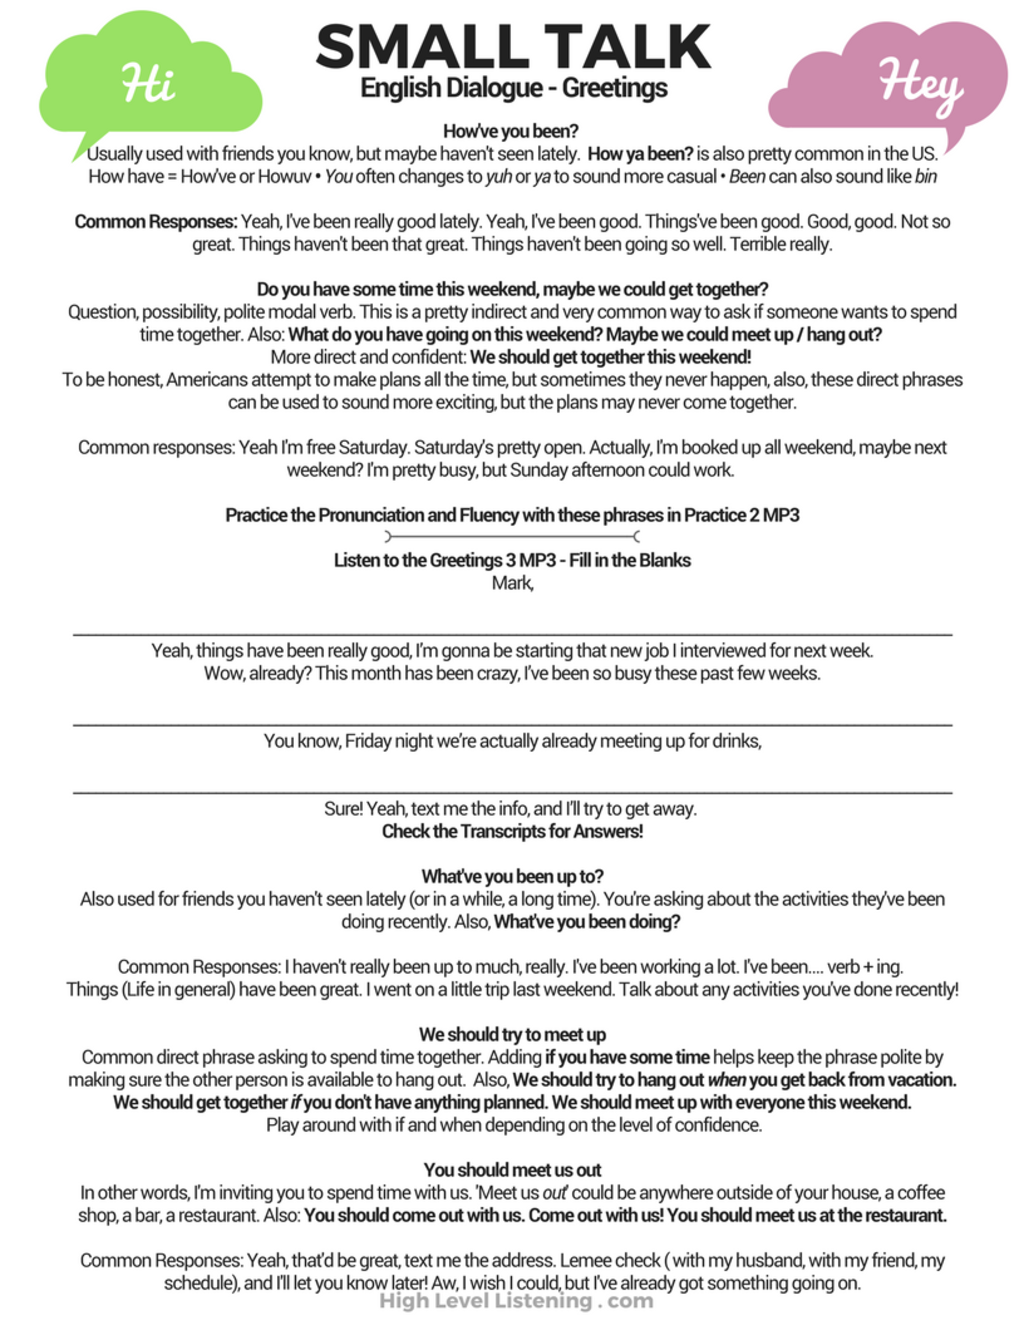 Advanced English Small Talk Greetings Worksheets And Dialogues With